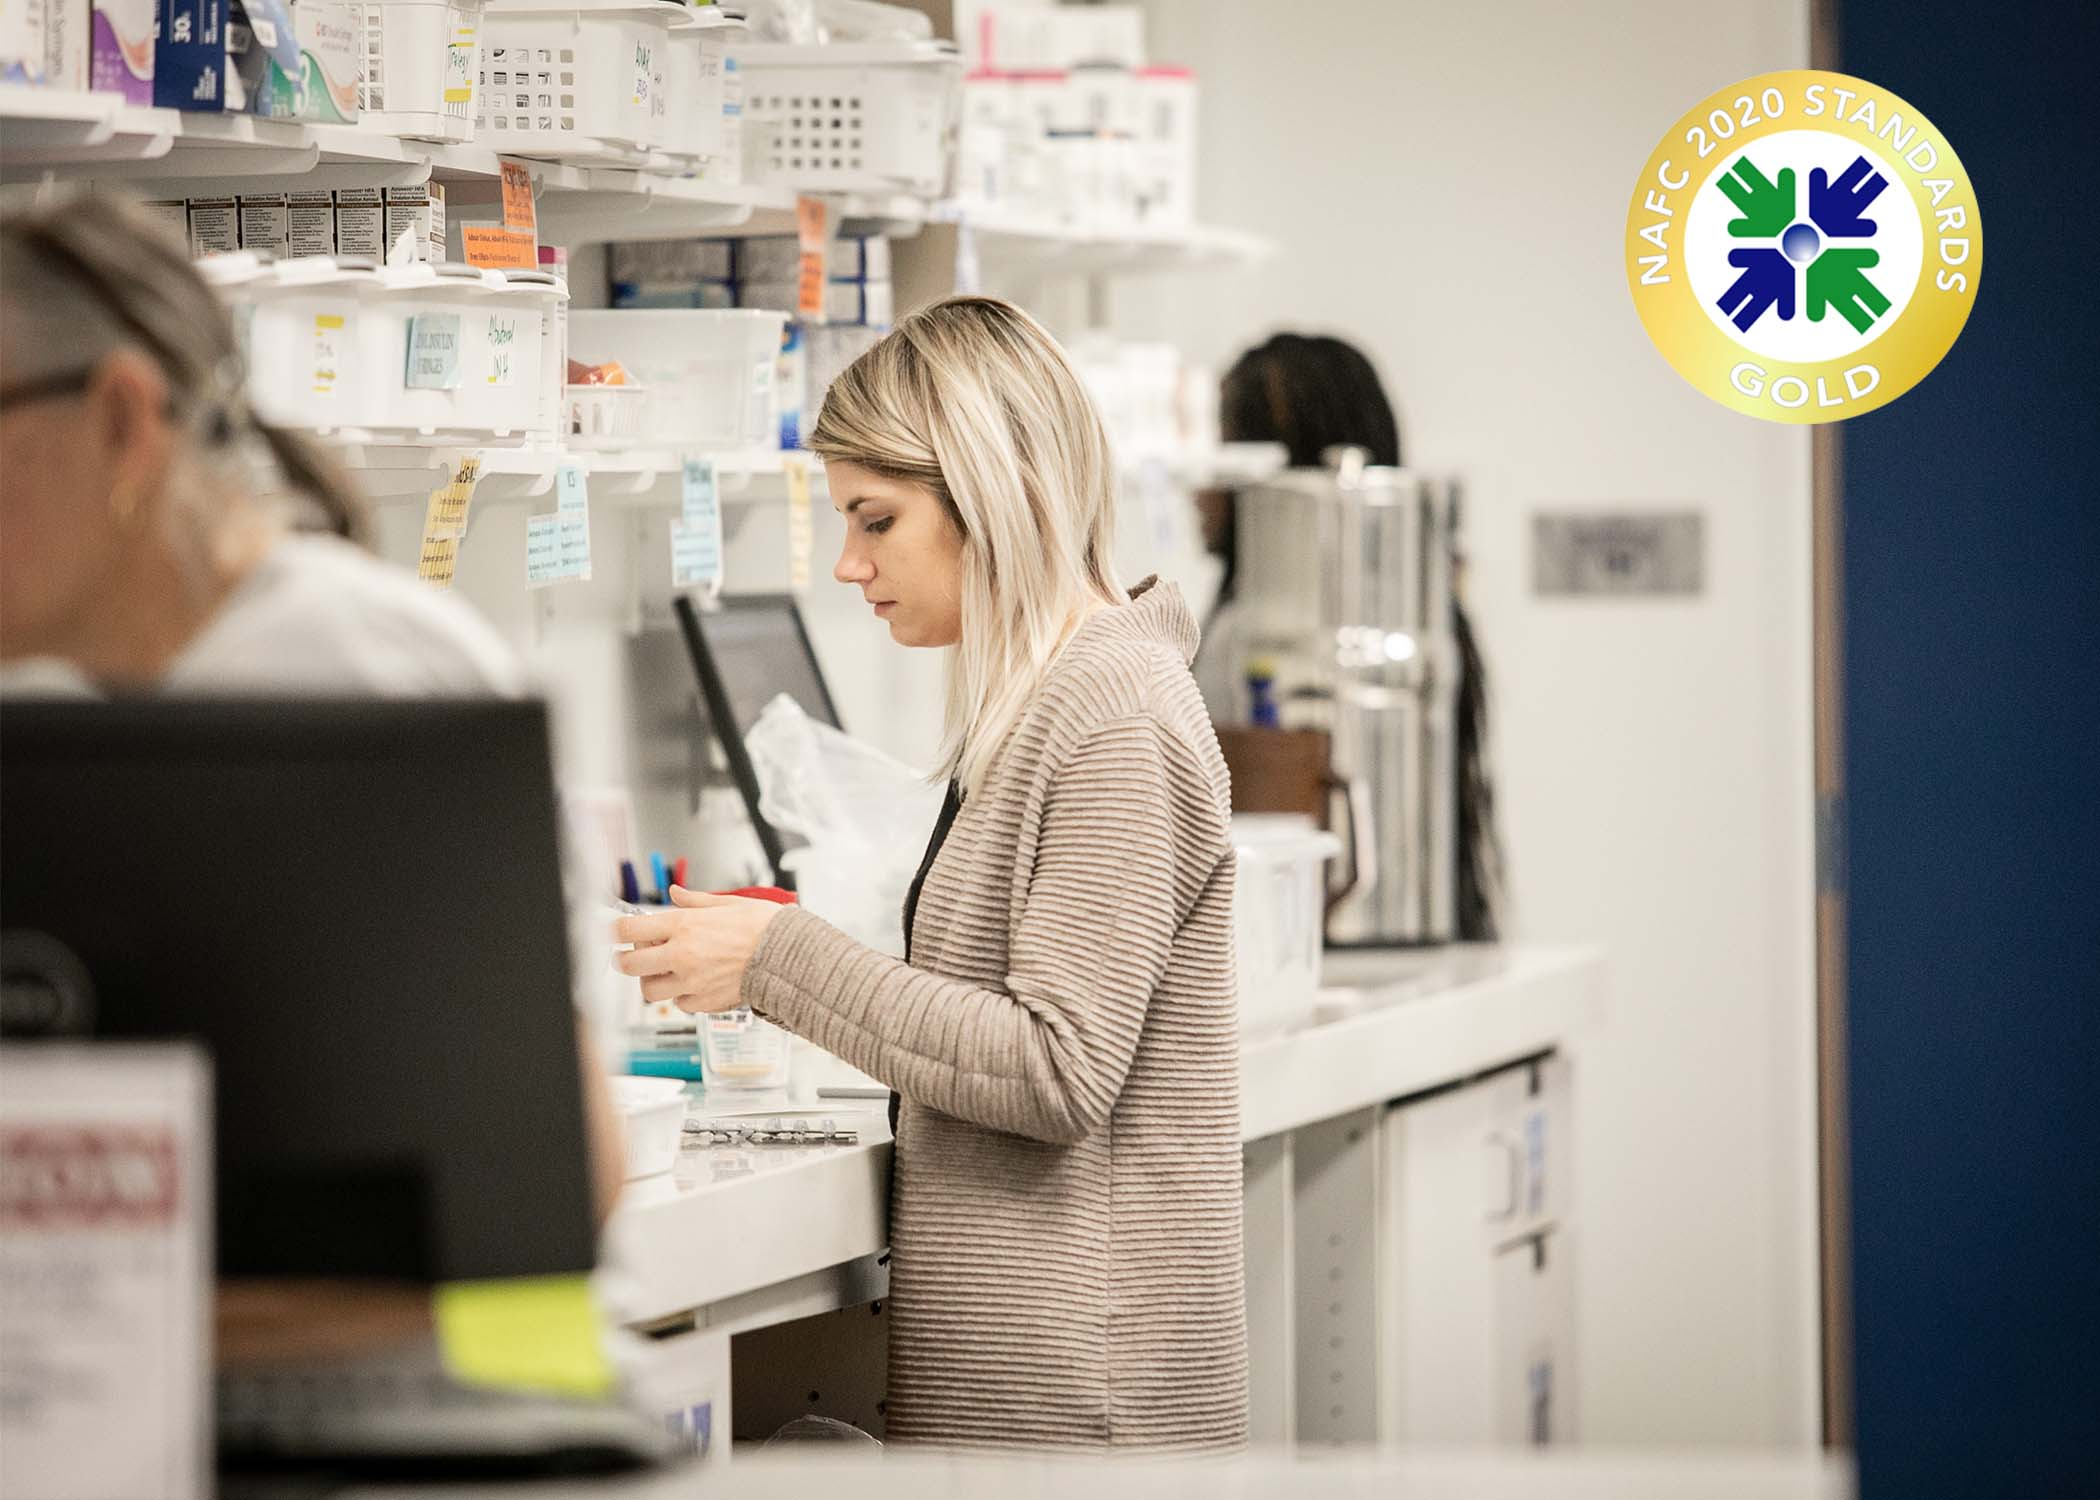 Pharmacy receives Gold Rating